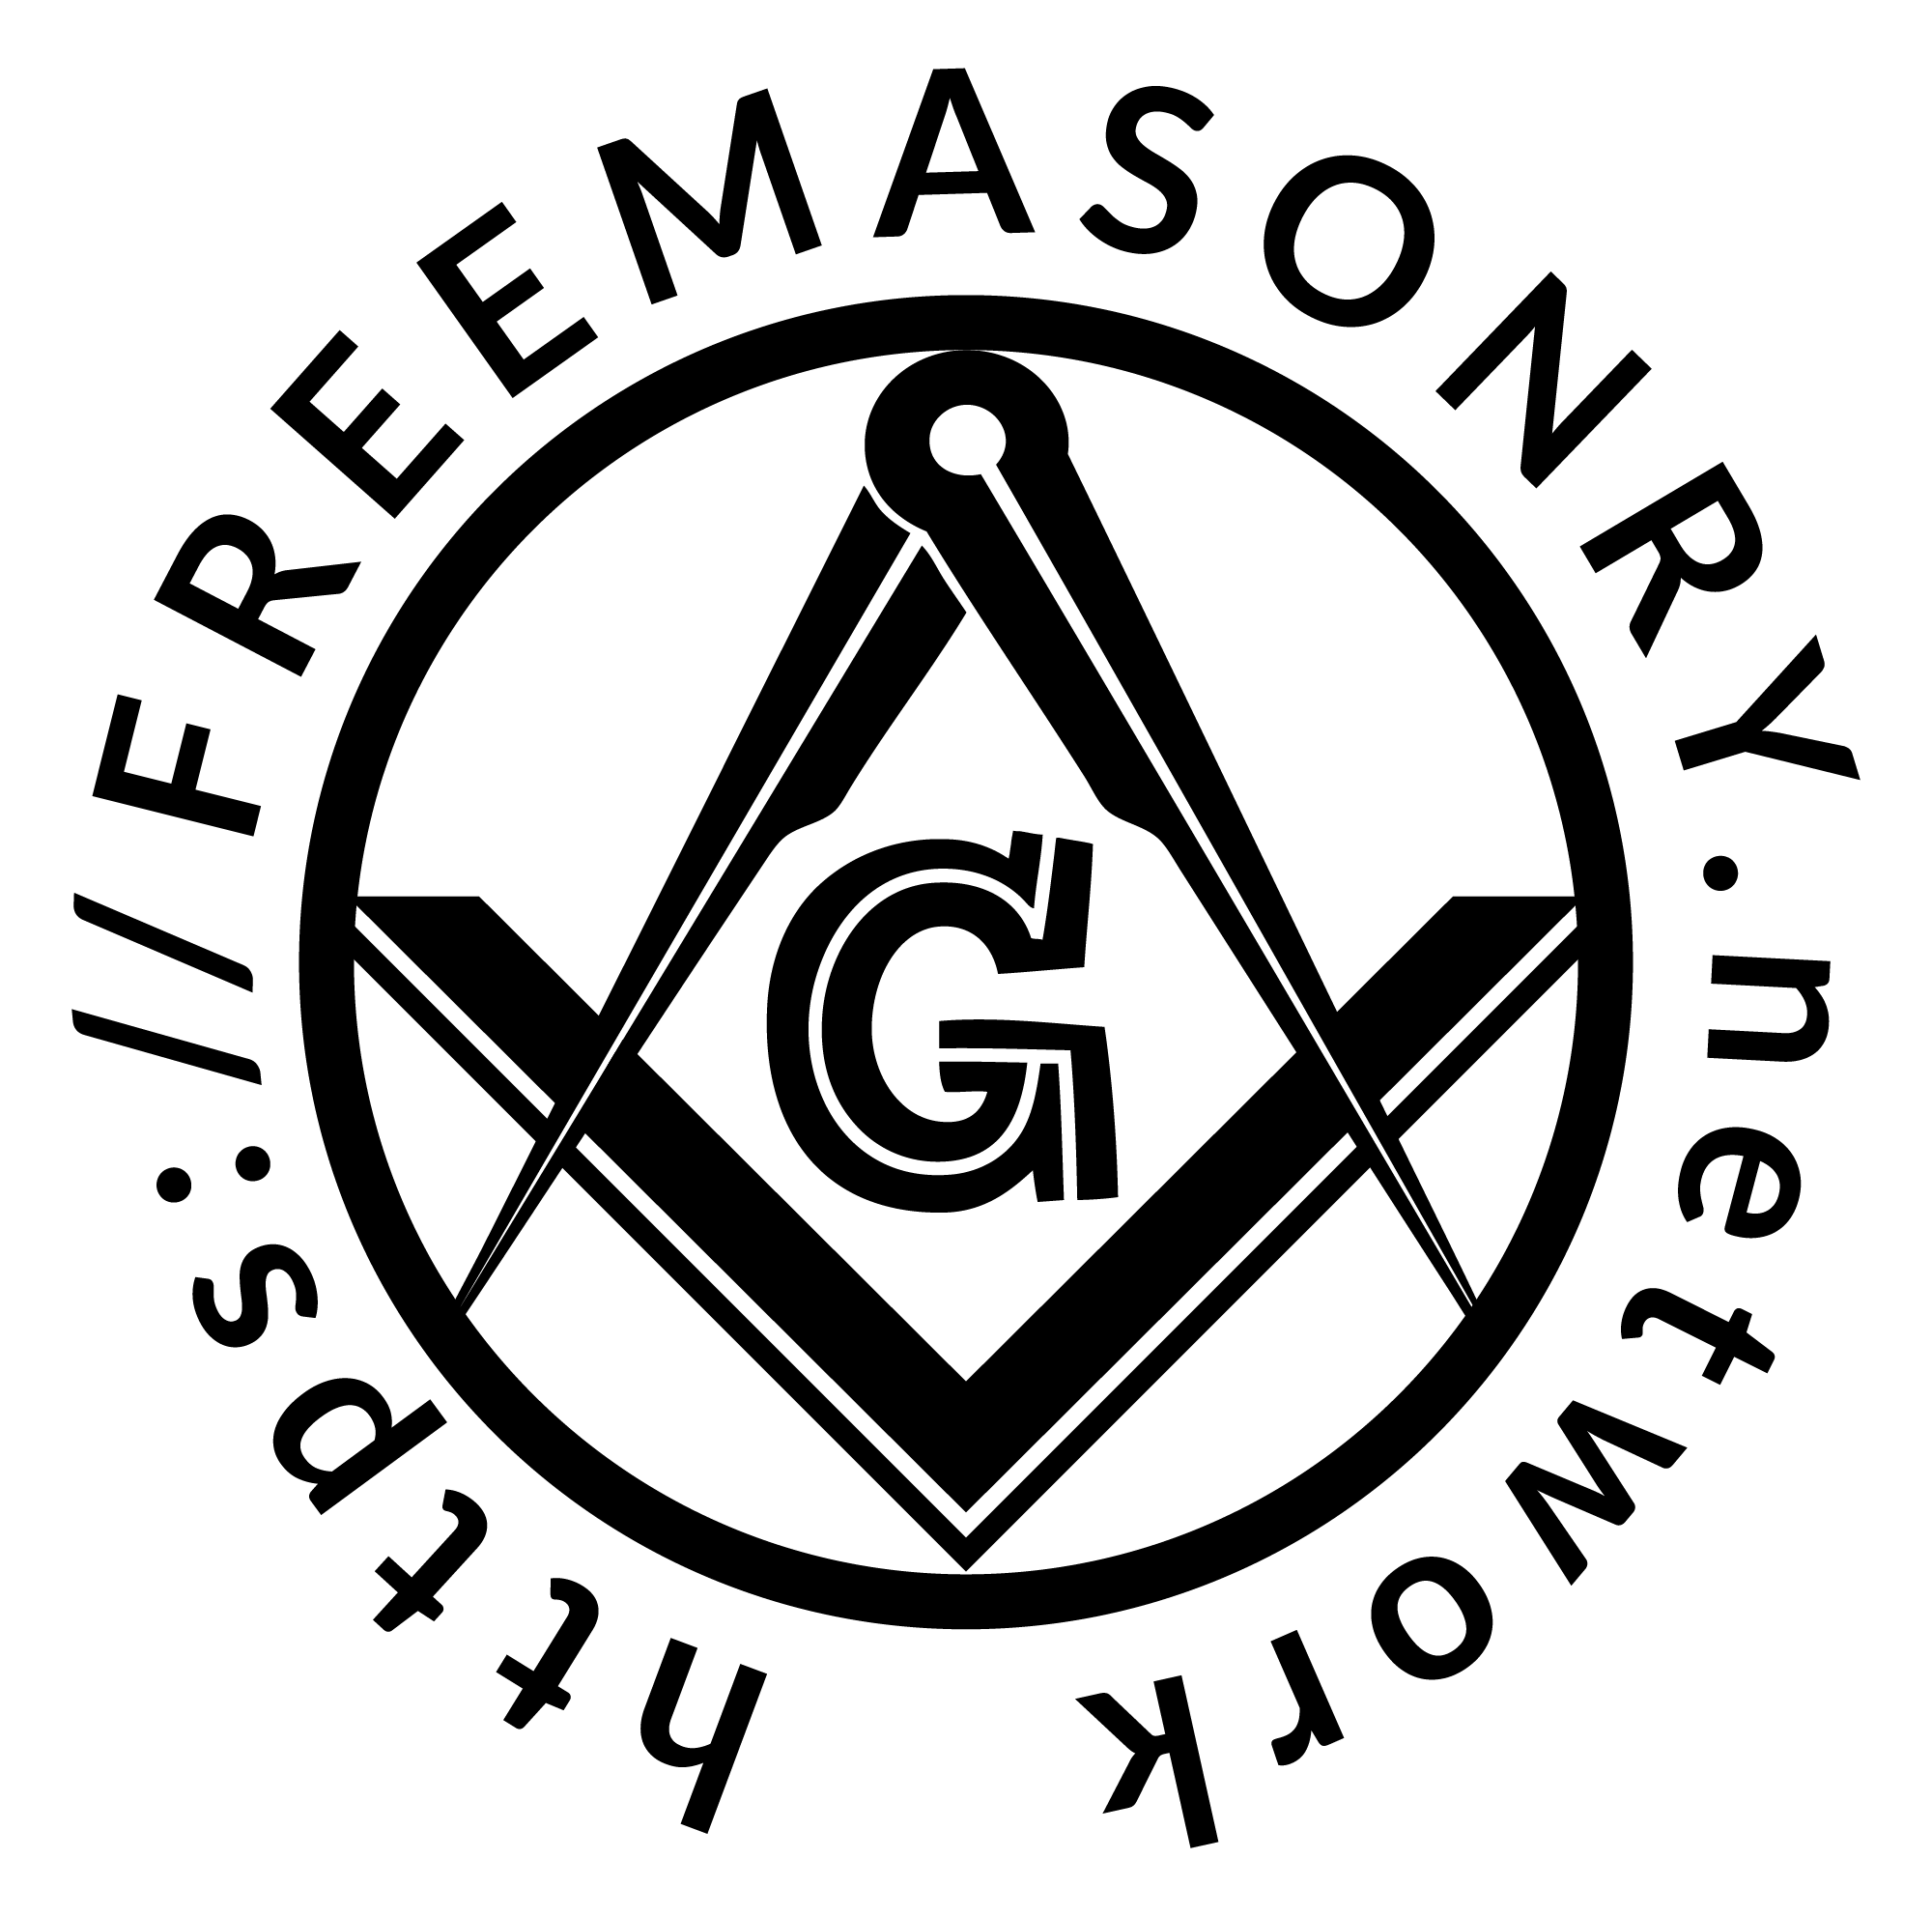 MASONIC HUMOR PICTURES GALLERY